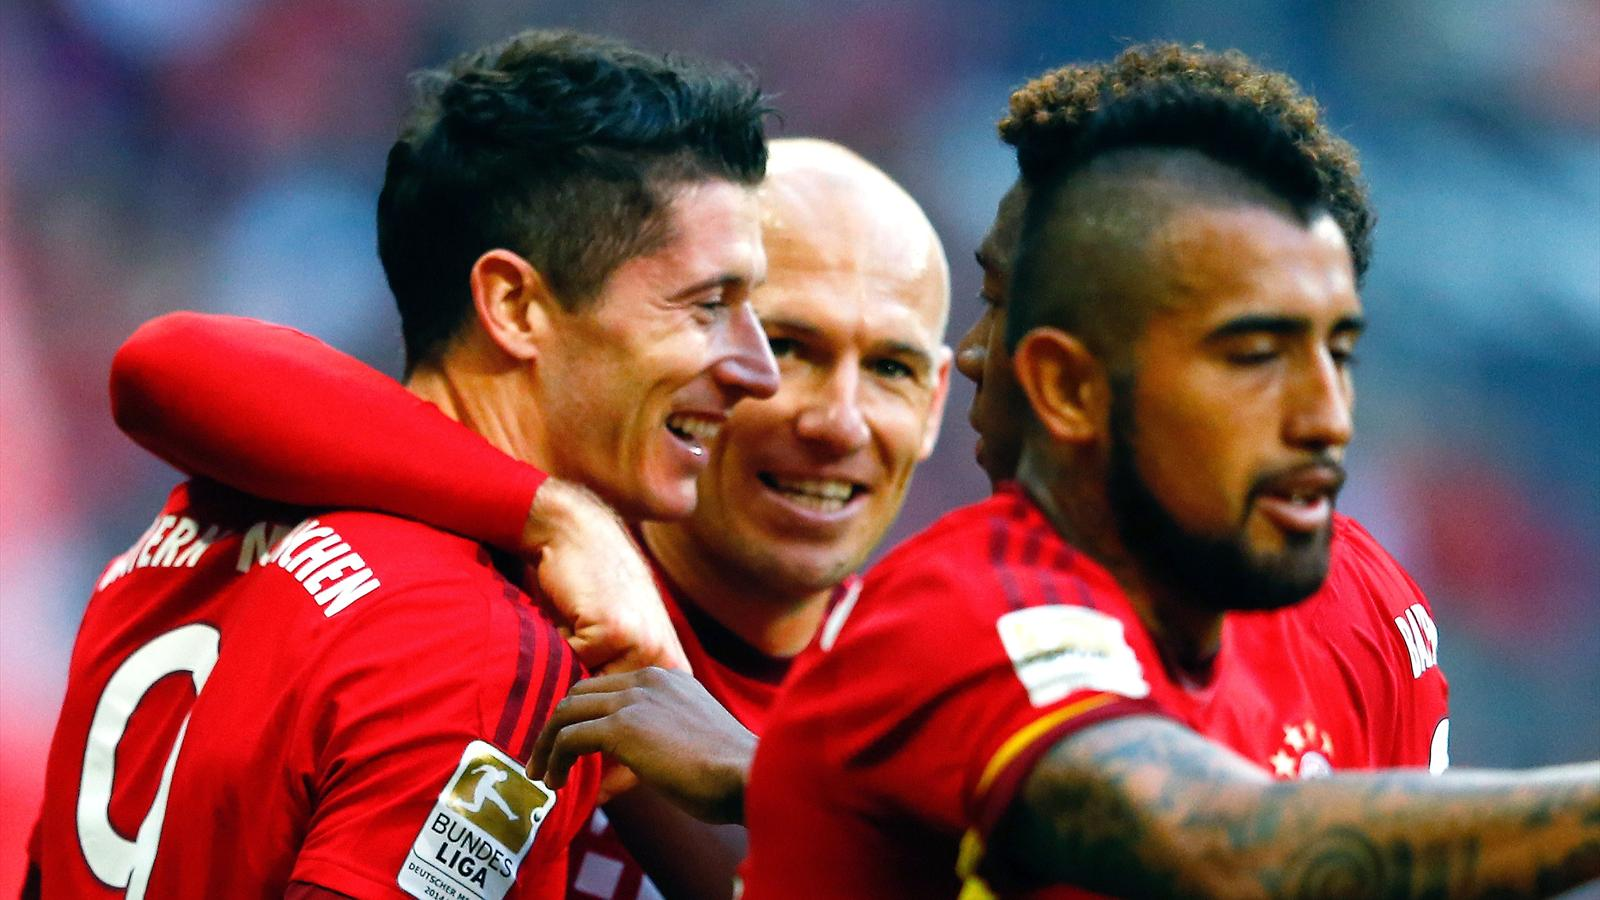 Bayern Munich's Robert Lewandowski (L-R) celebrates with Arjen Robben and Arturo Vidal after he scored against Cologne during their Bundesliga match